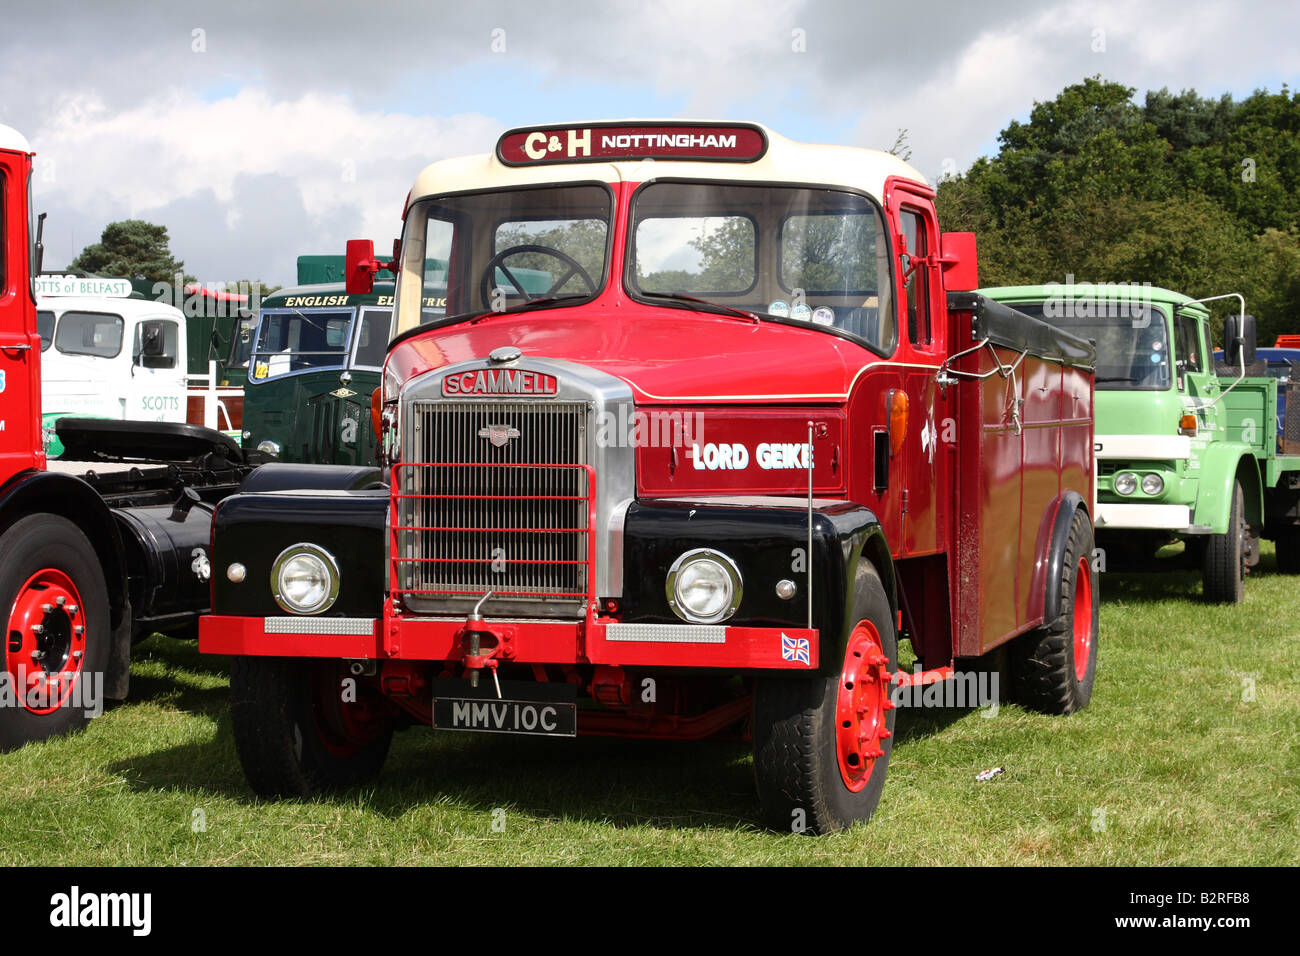 A Scammell vintage lorry at a rally in the U.K. - Stock Image